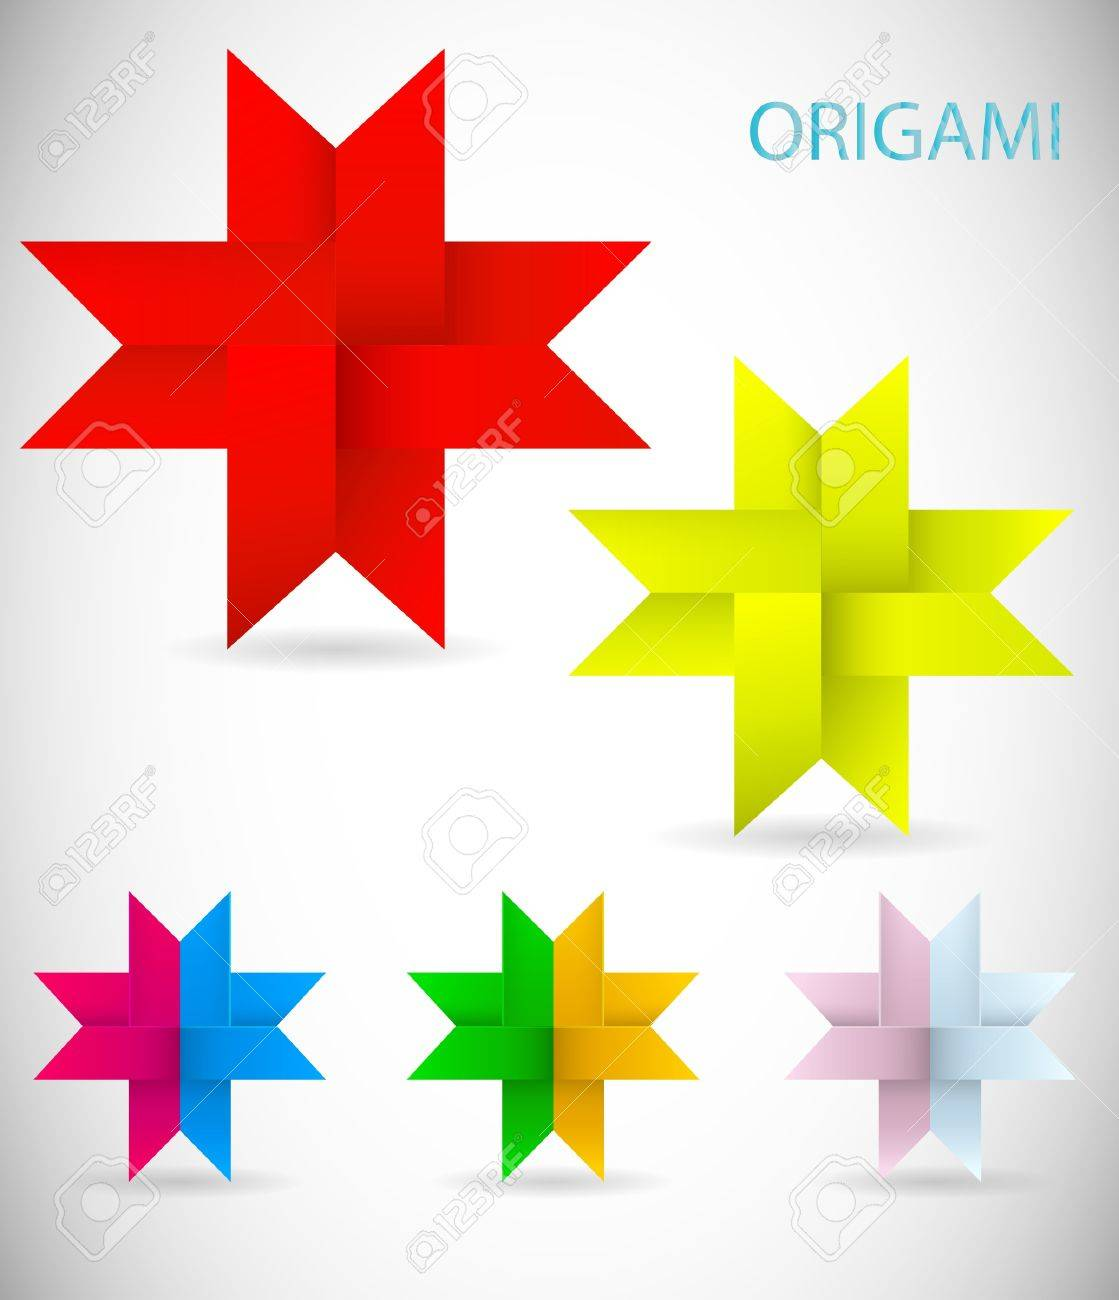 illustration of a simple origami Stock Vector - 14243969